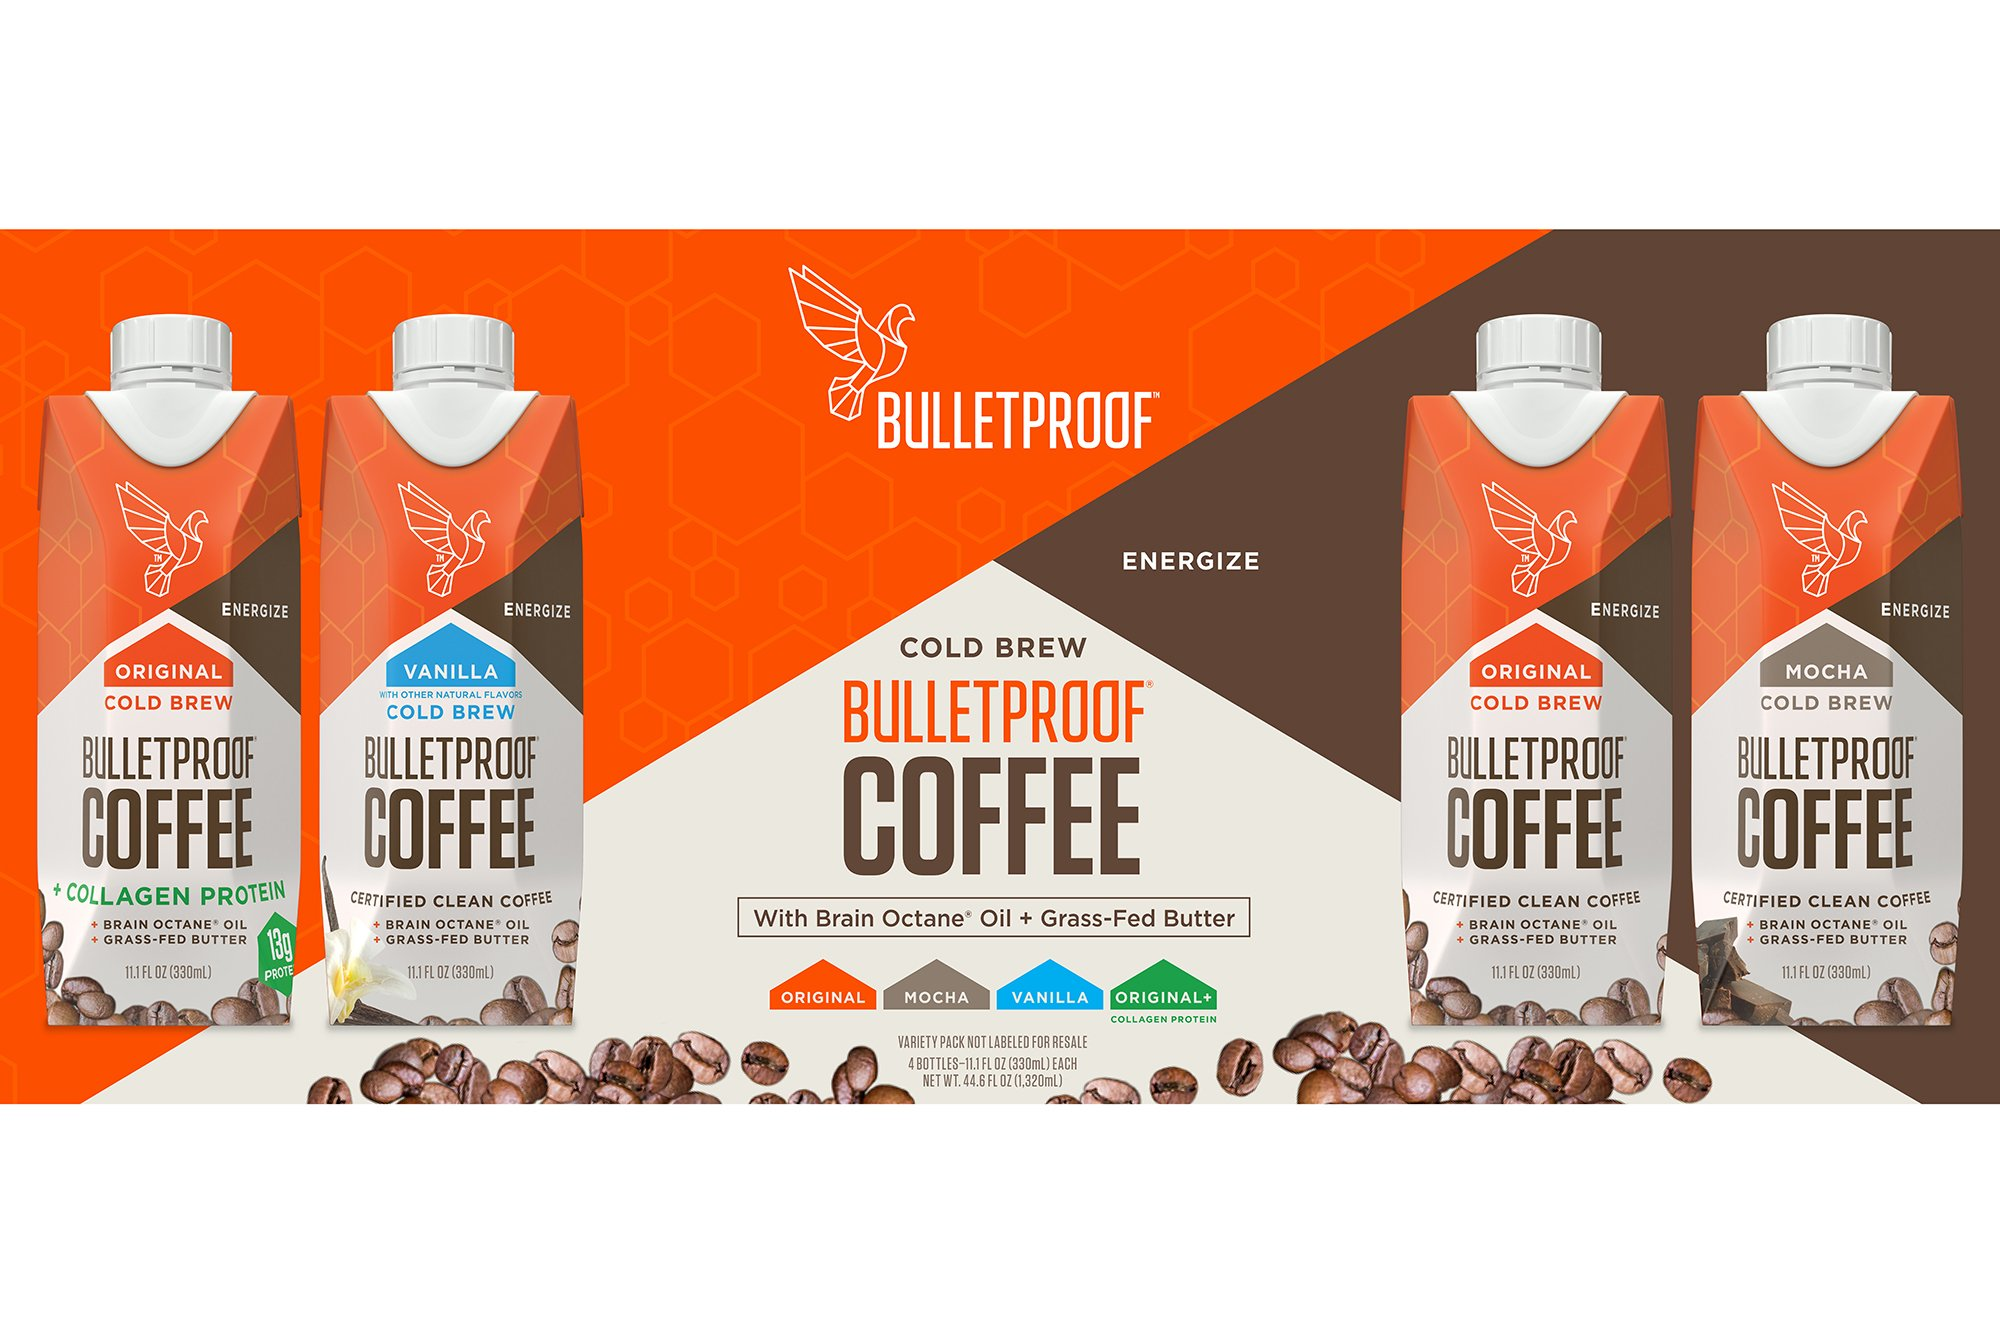 Bulletproof Coffee Cold Brew Ready To Drink- Ketogentic Diet, Sugar-Free, Includes Grass-Fed Butter and Brain Octane Oil, Vanilla (12 Pack) by Bulletproof (Image #5)